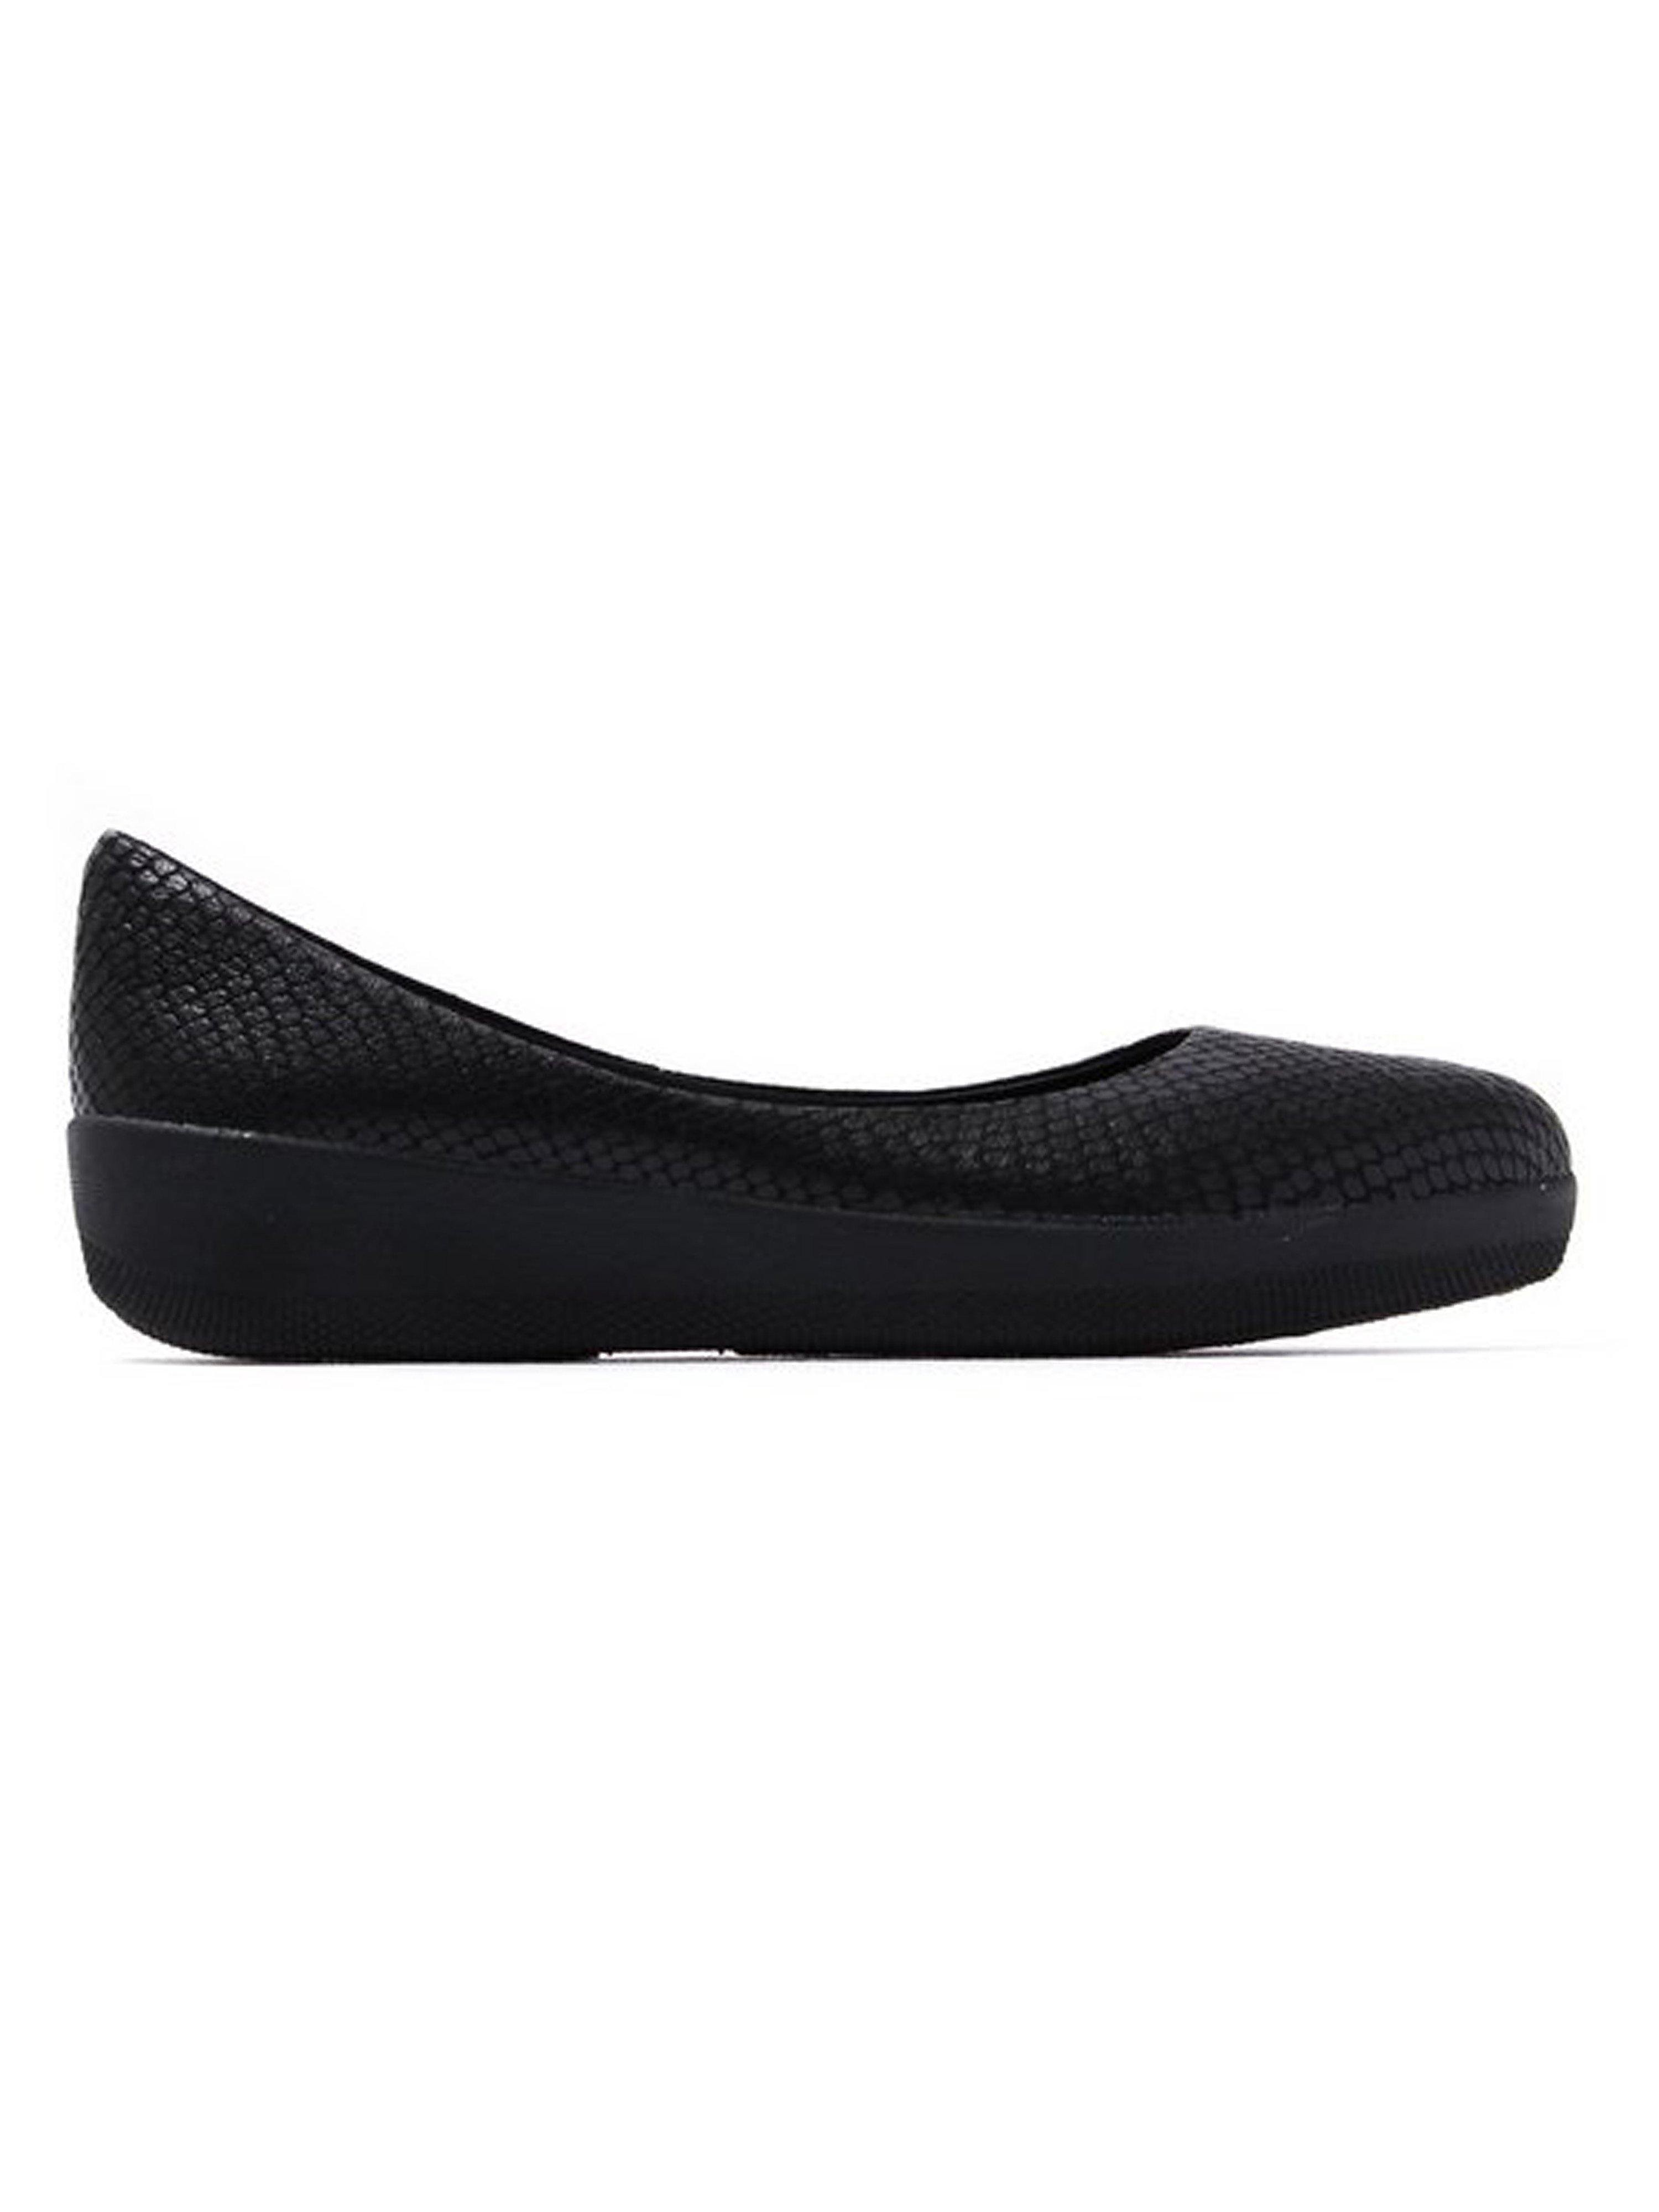 FitFlop Women's Superballerina Shoes - Black Snake